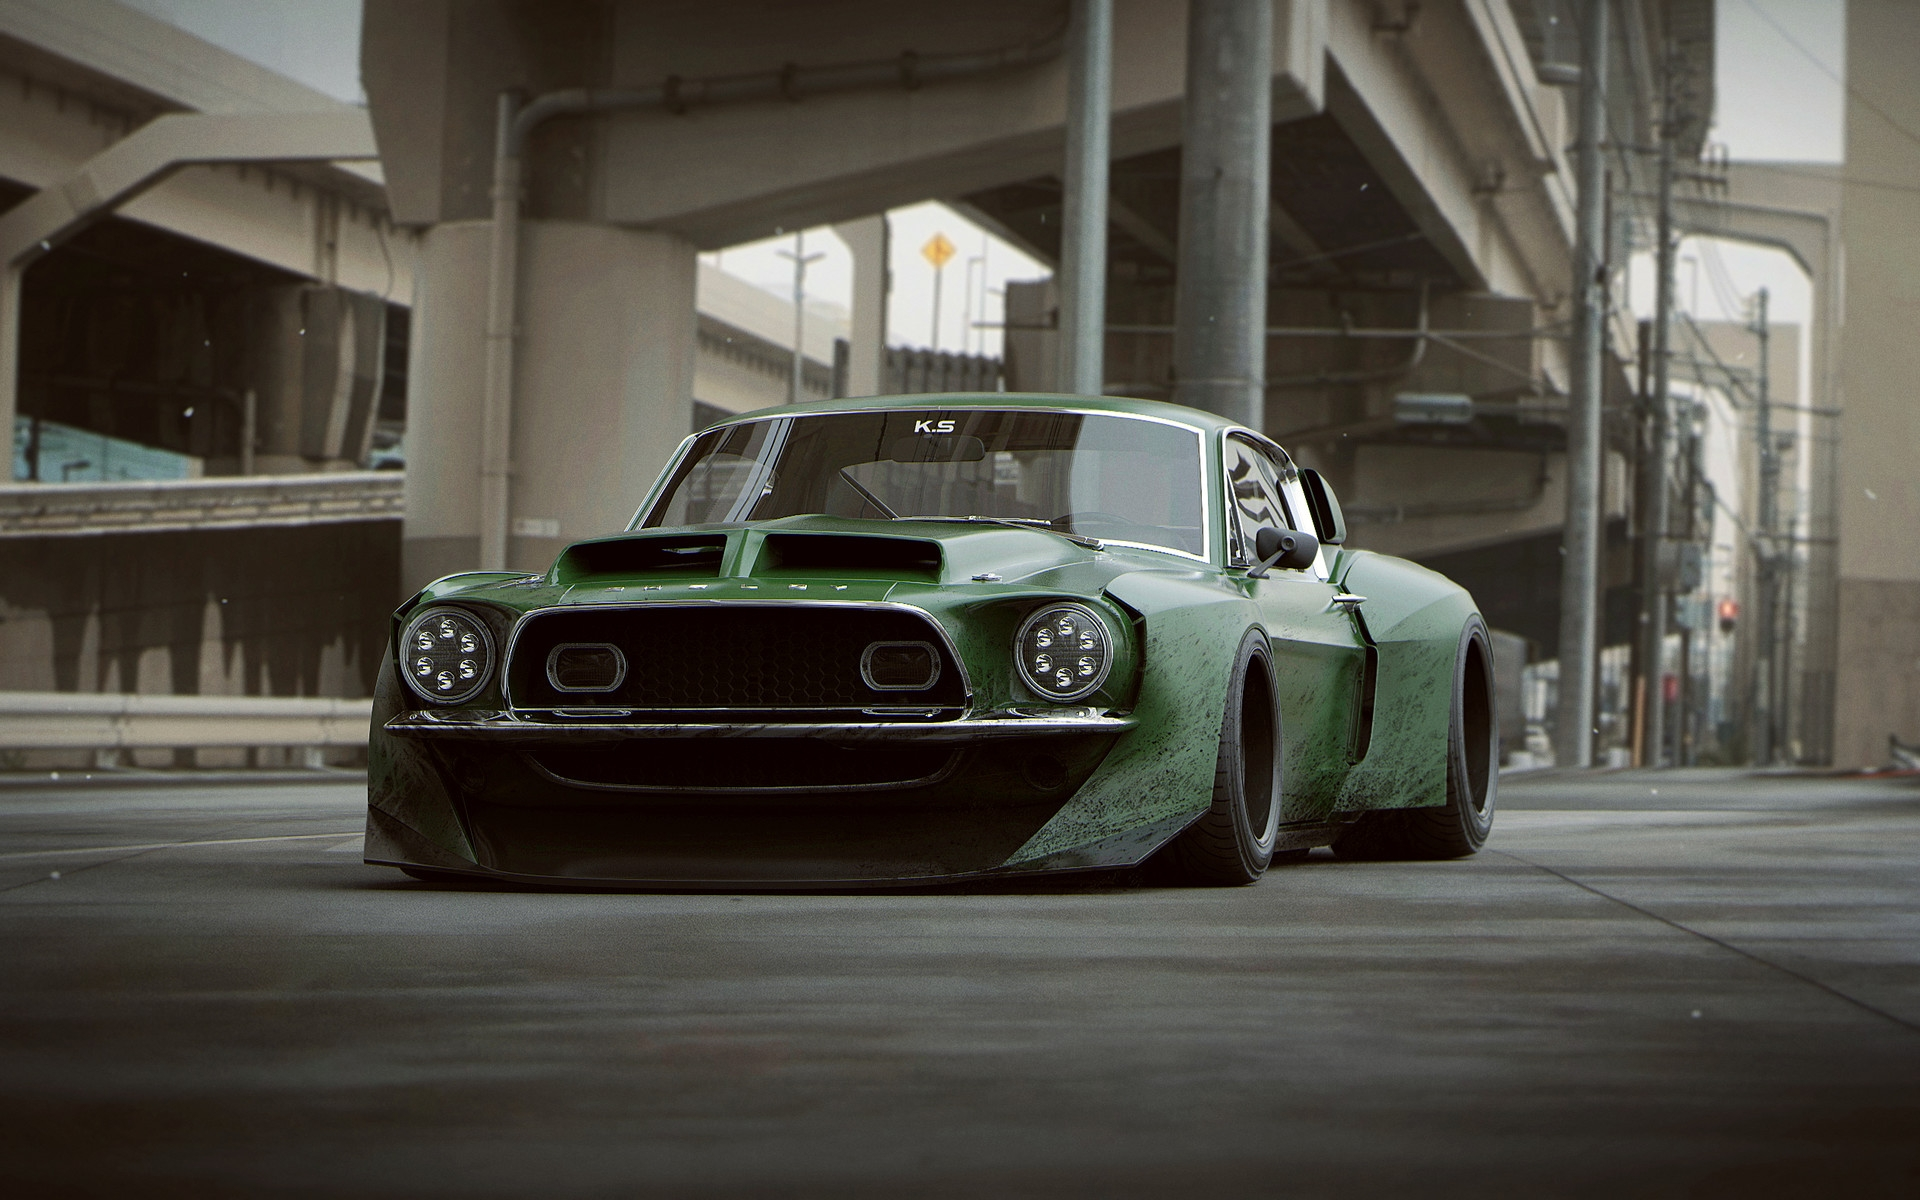 Bmw E30 Iphone Wallpaper Download 1920x1080 Ford Shelby Gt500 Tuning Muscle Cars